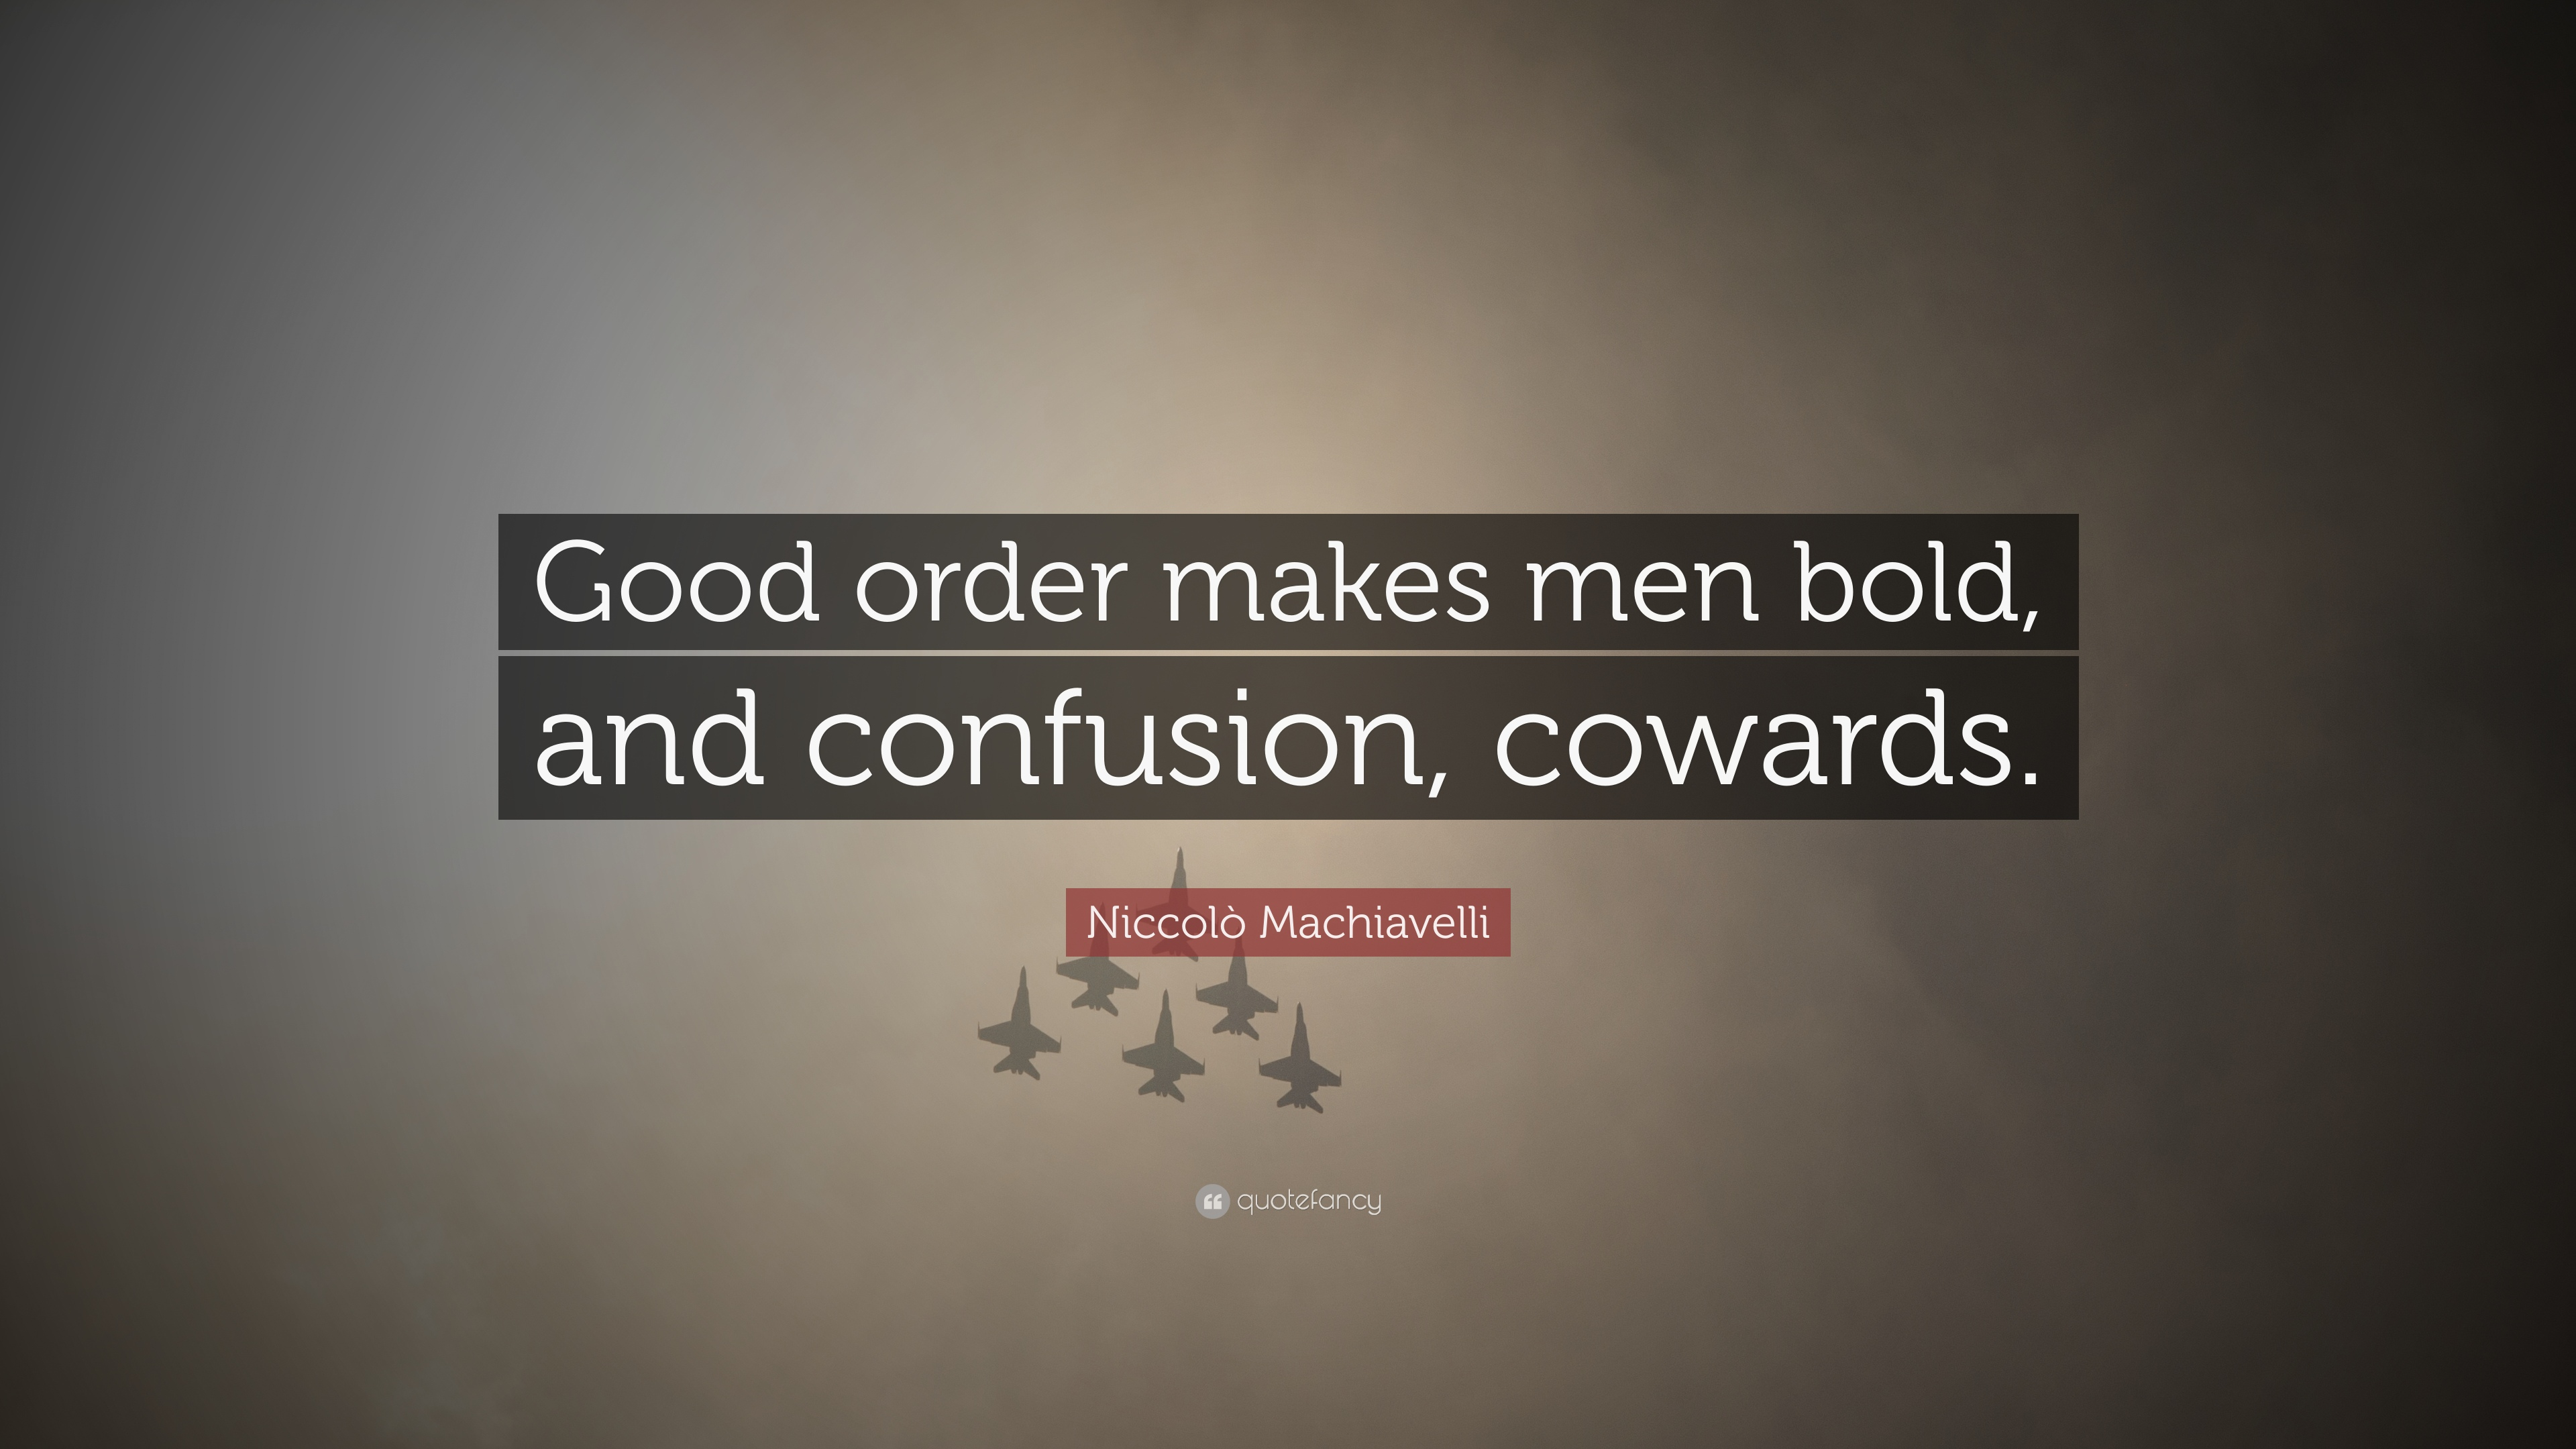 niccol machiavelli life and ideas 1 biography relatively little is known for certain about machiavelli's early life in comparison with many important figures of the italian renaissance (the following section draws on capponi 2010 and vivanti 2013) he was born 3 may 1469 in florence and at a young age became a pupil of a renowned latin teacher, paolo da ronciglione.